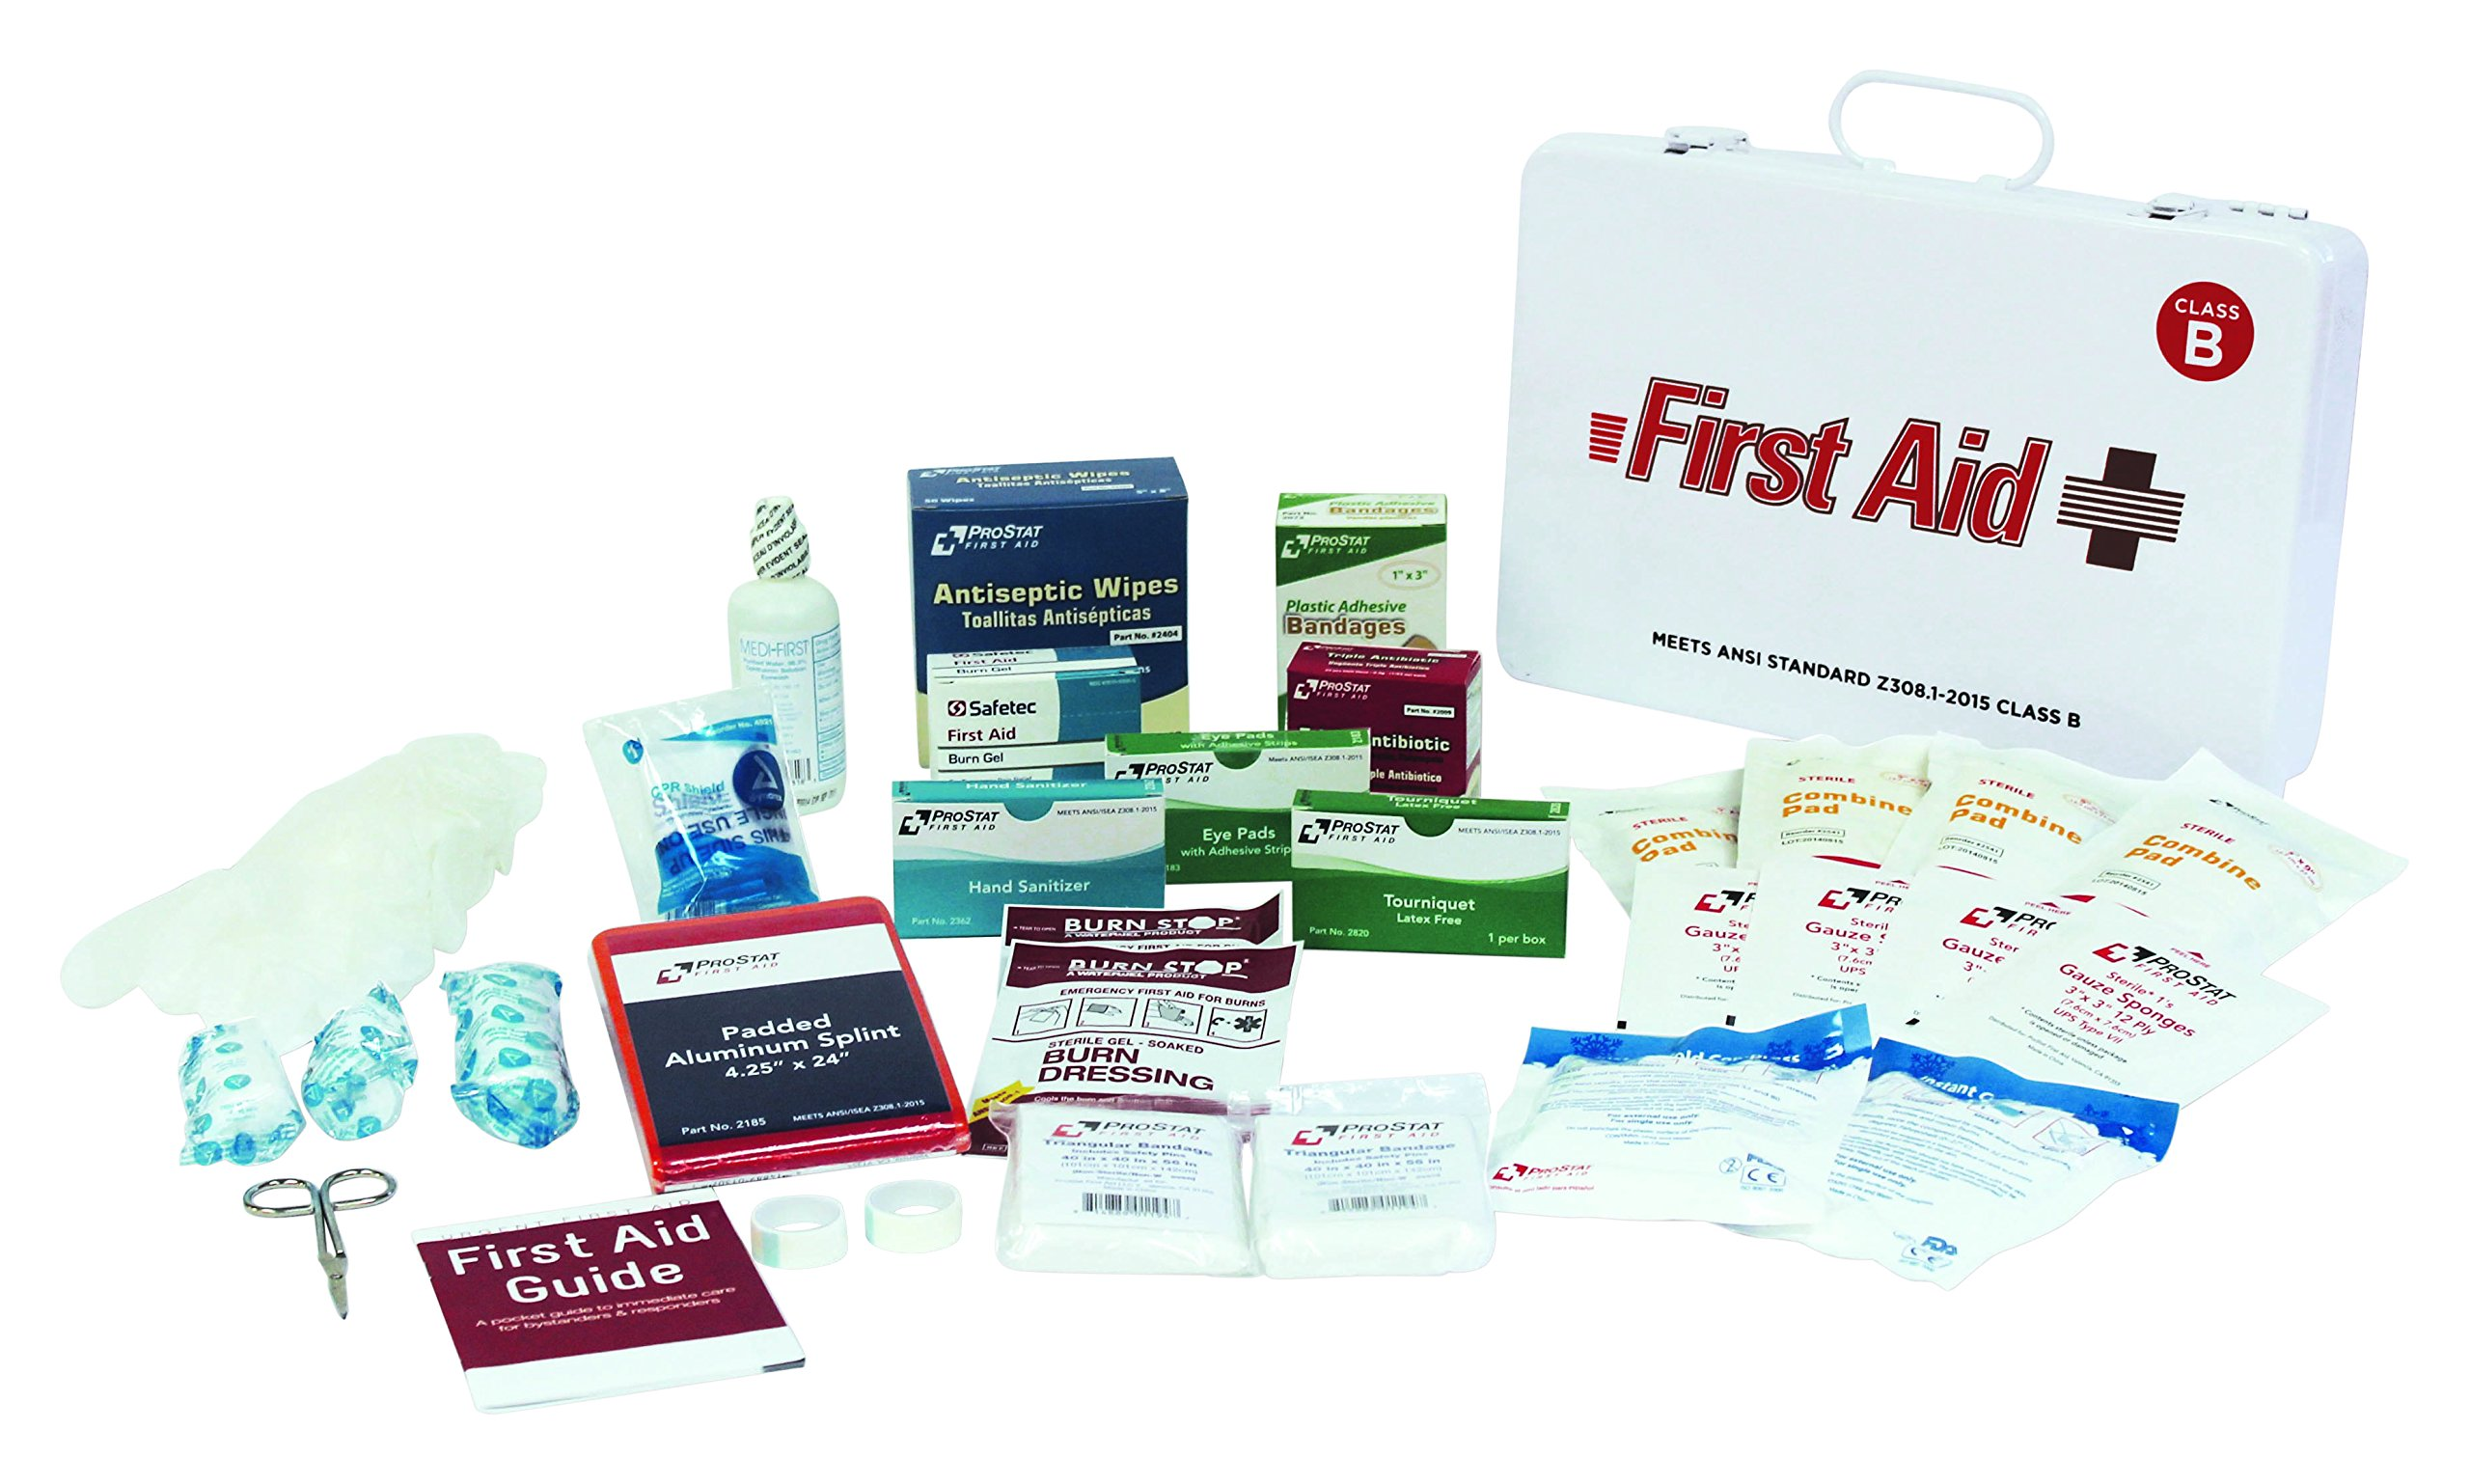 ProStat First Aid 1890 50 Person Class B First Aid Kit in Steel Case by ProStat First Aid (Image #1)